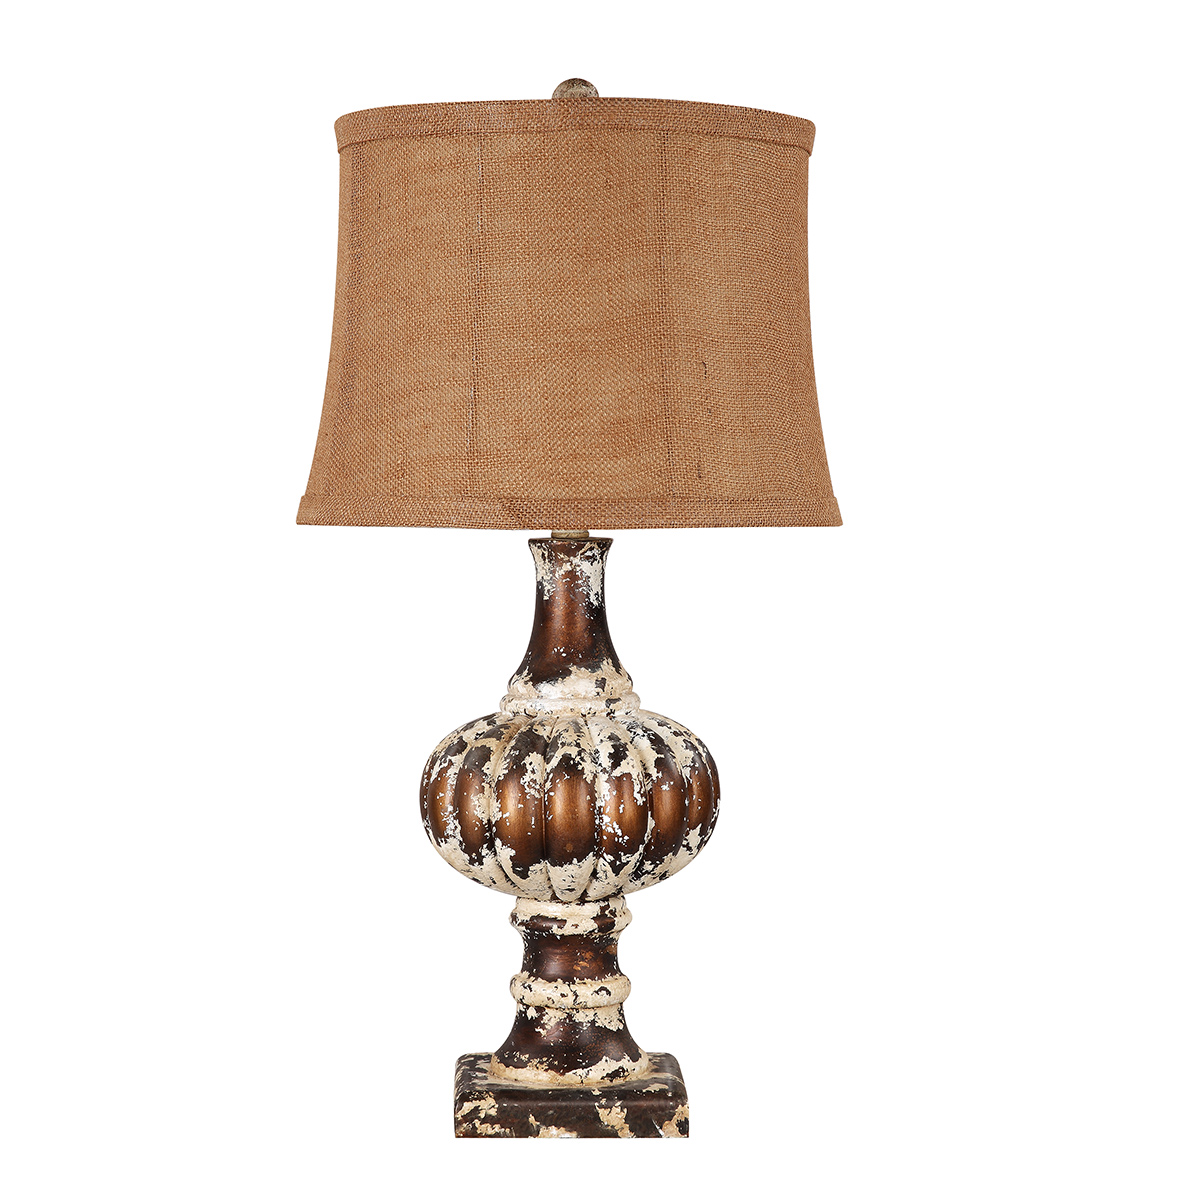 Weathered Brass Table Lamp